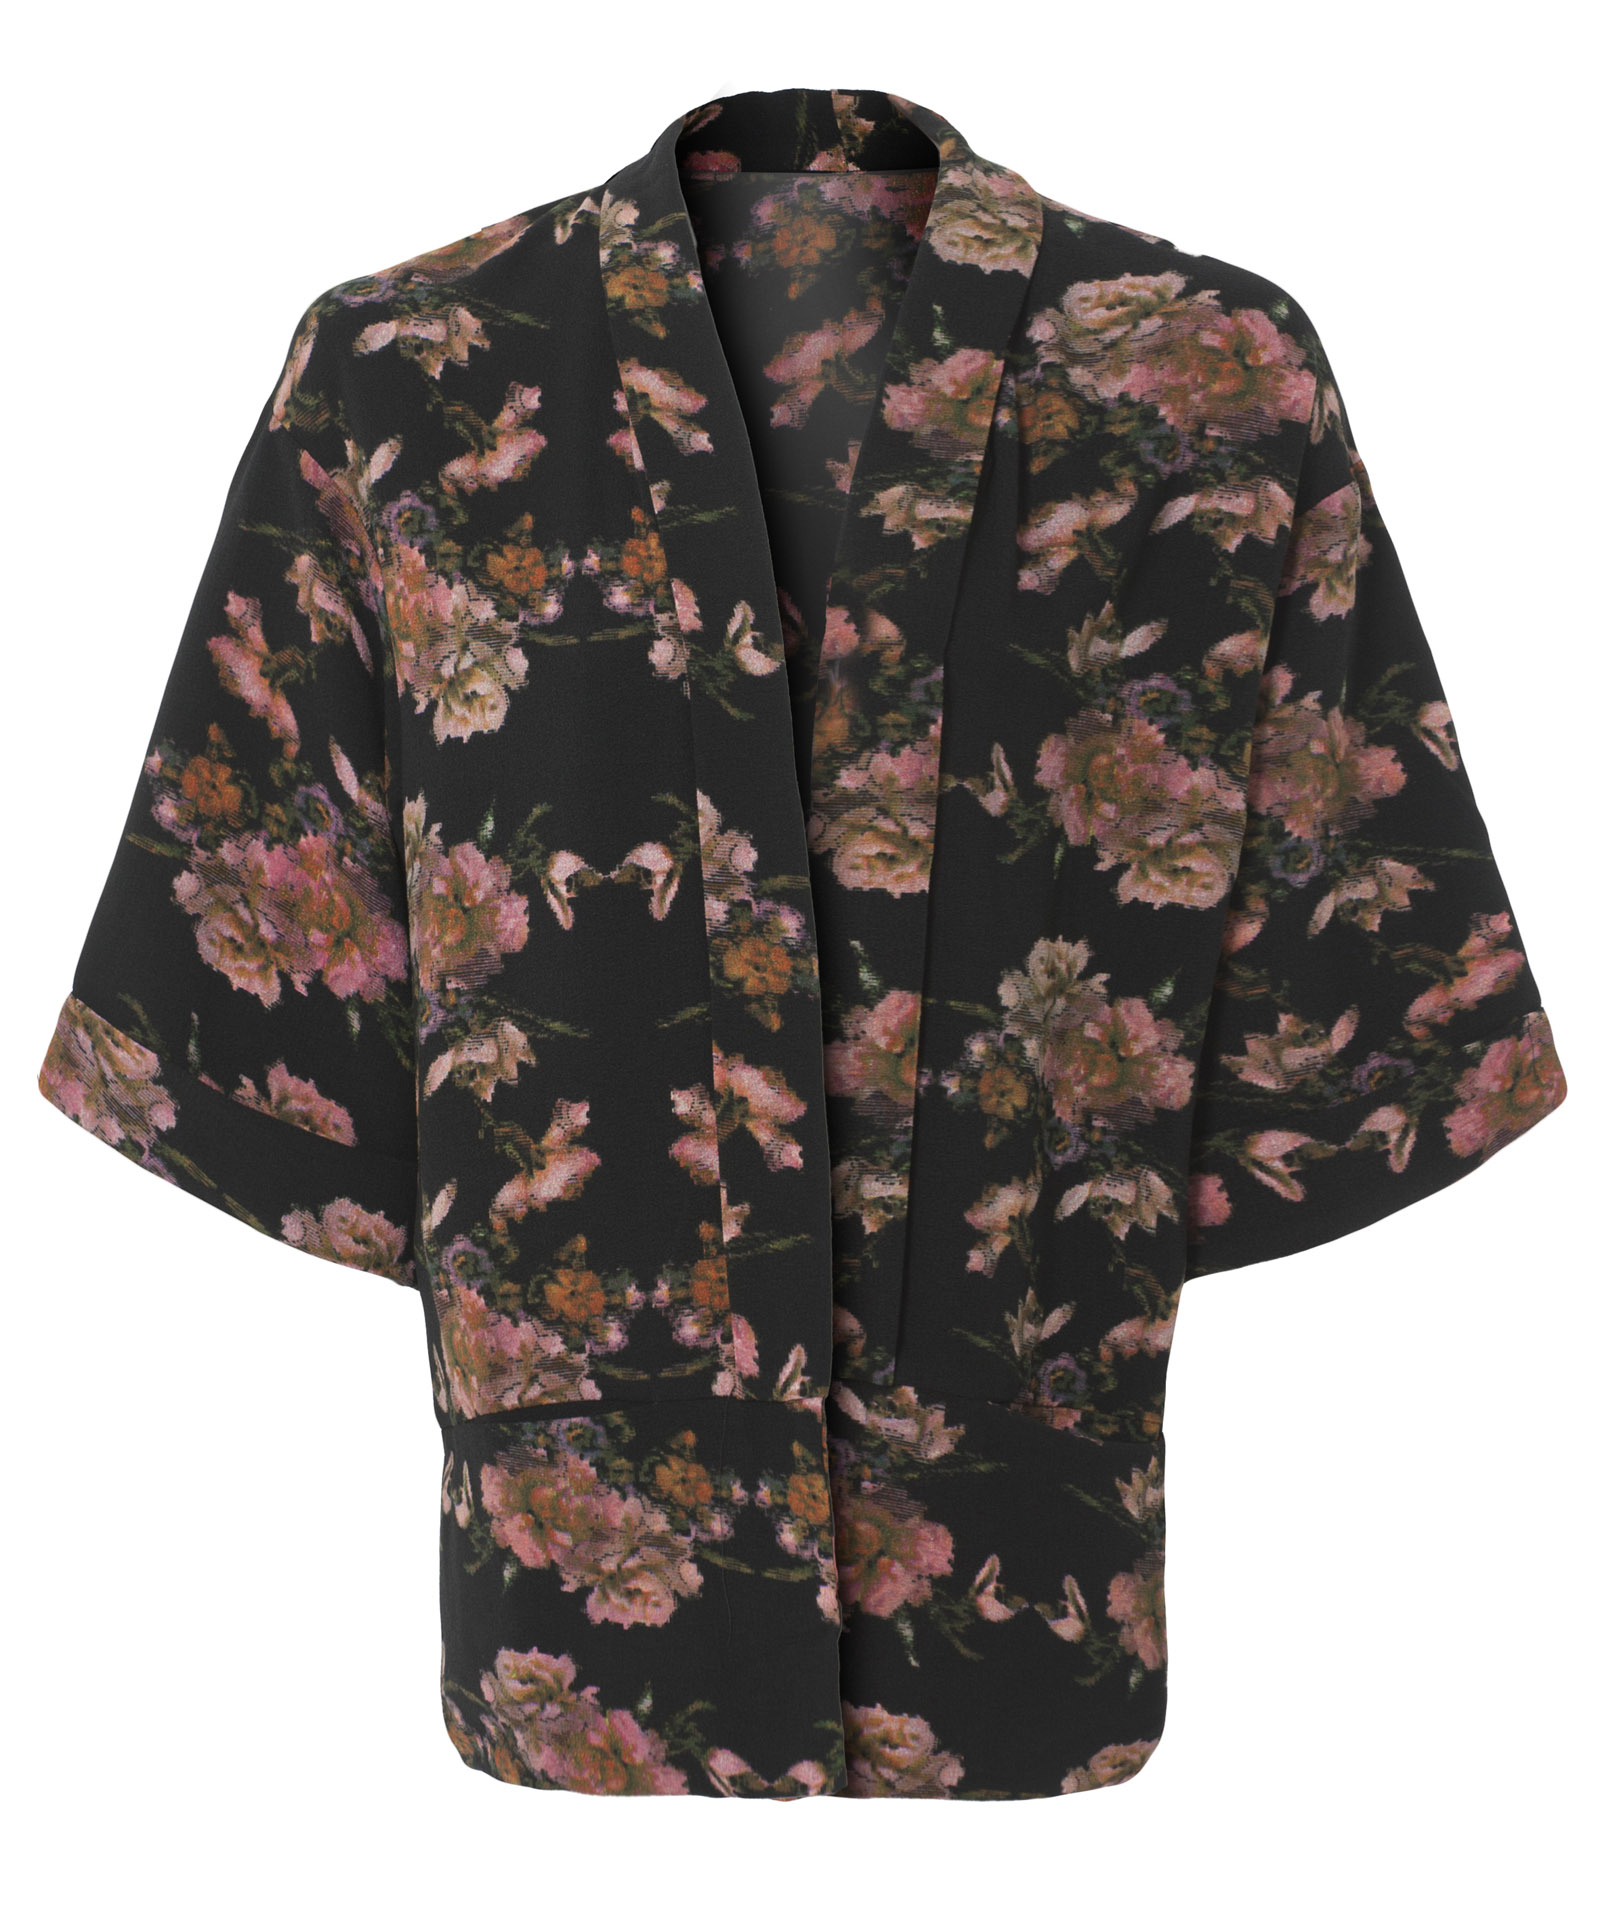 View Item Floral Print Kimono Printed Jacket Open Jacket By Own The Runway